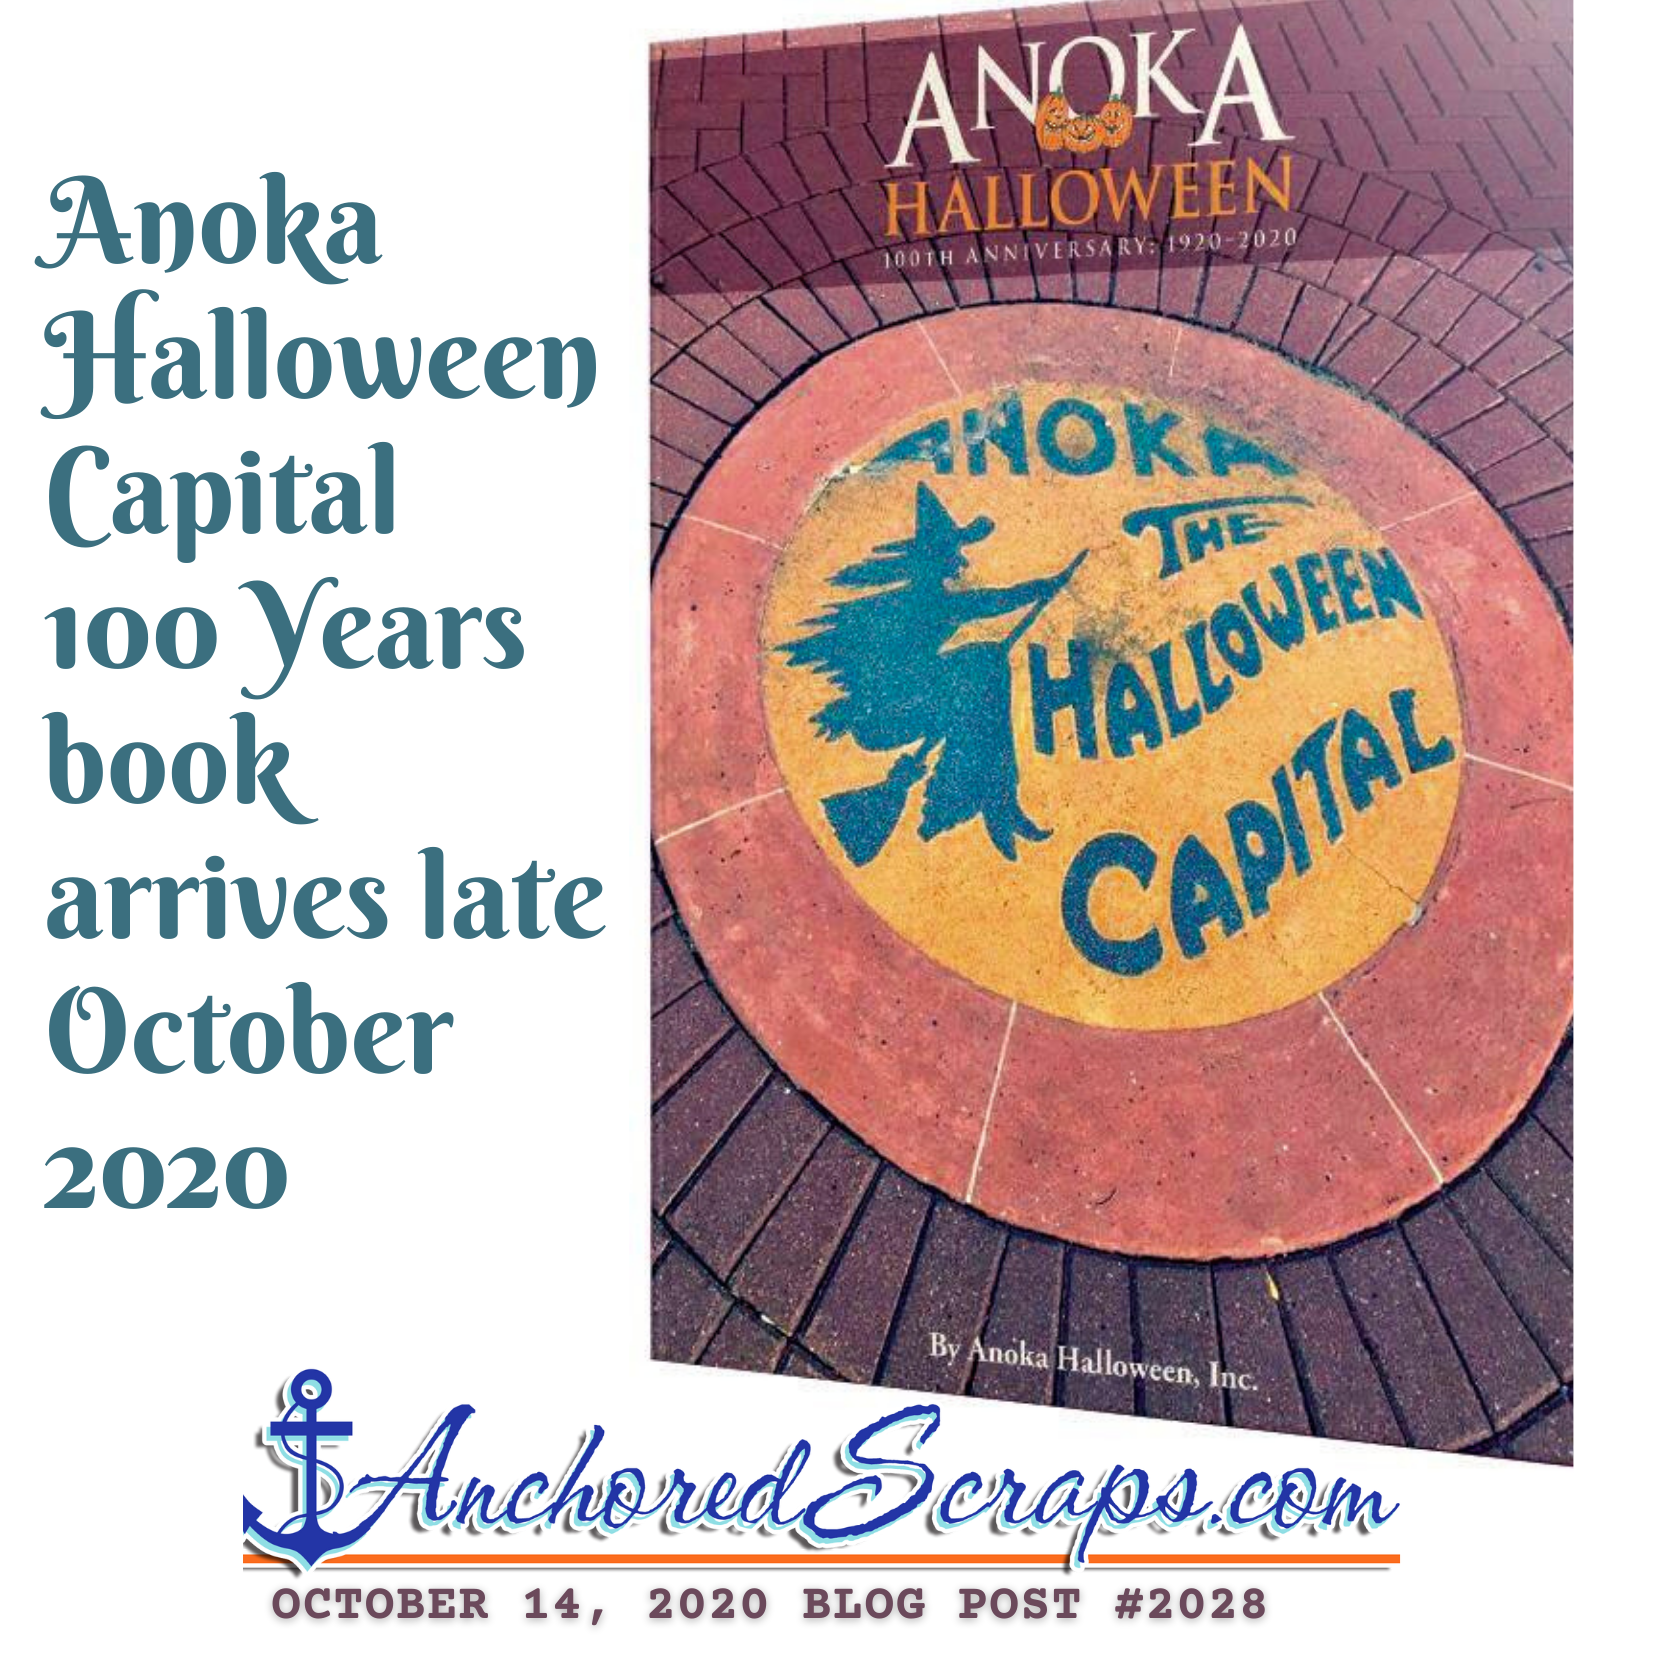 Anoka Halloween Capital 100 Years book #2028